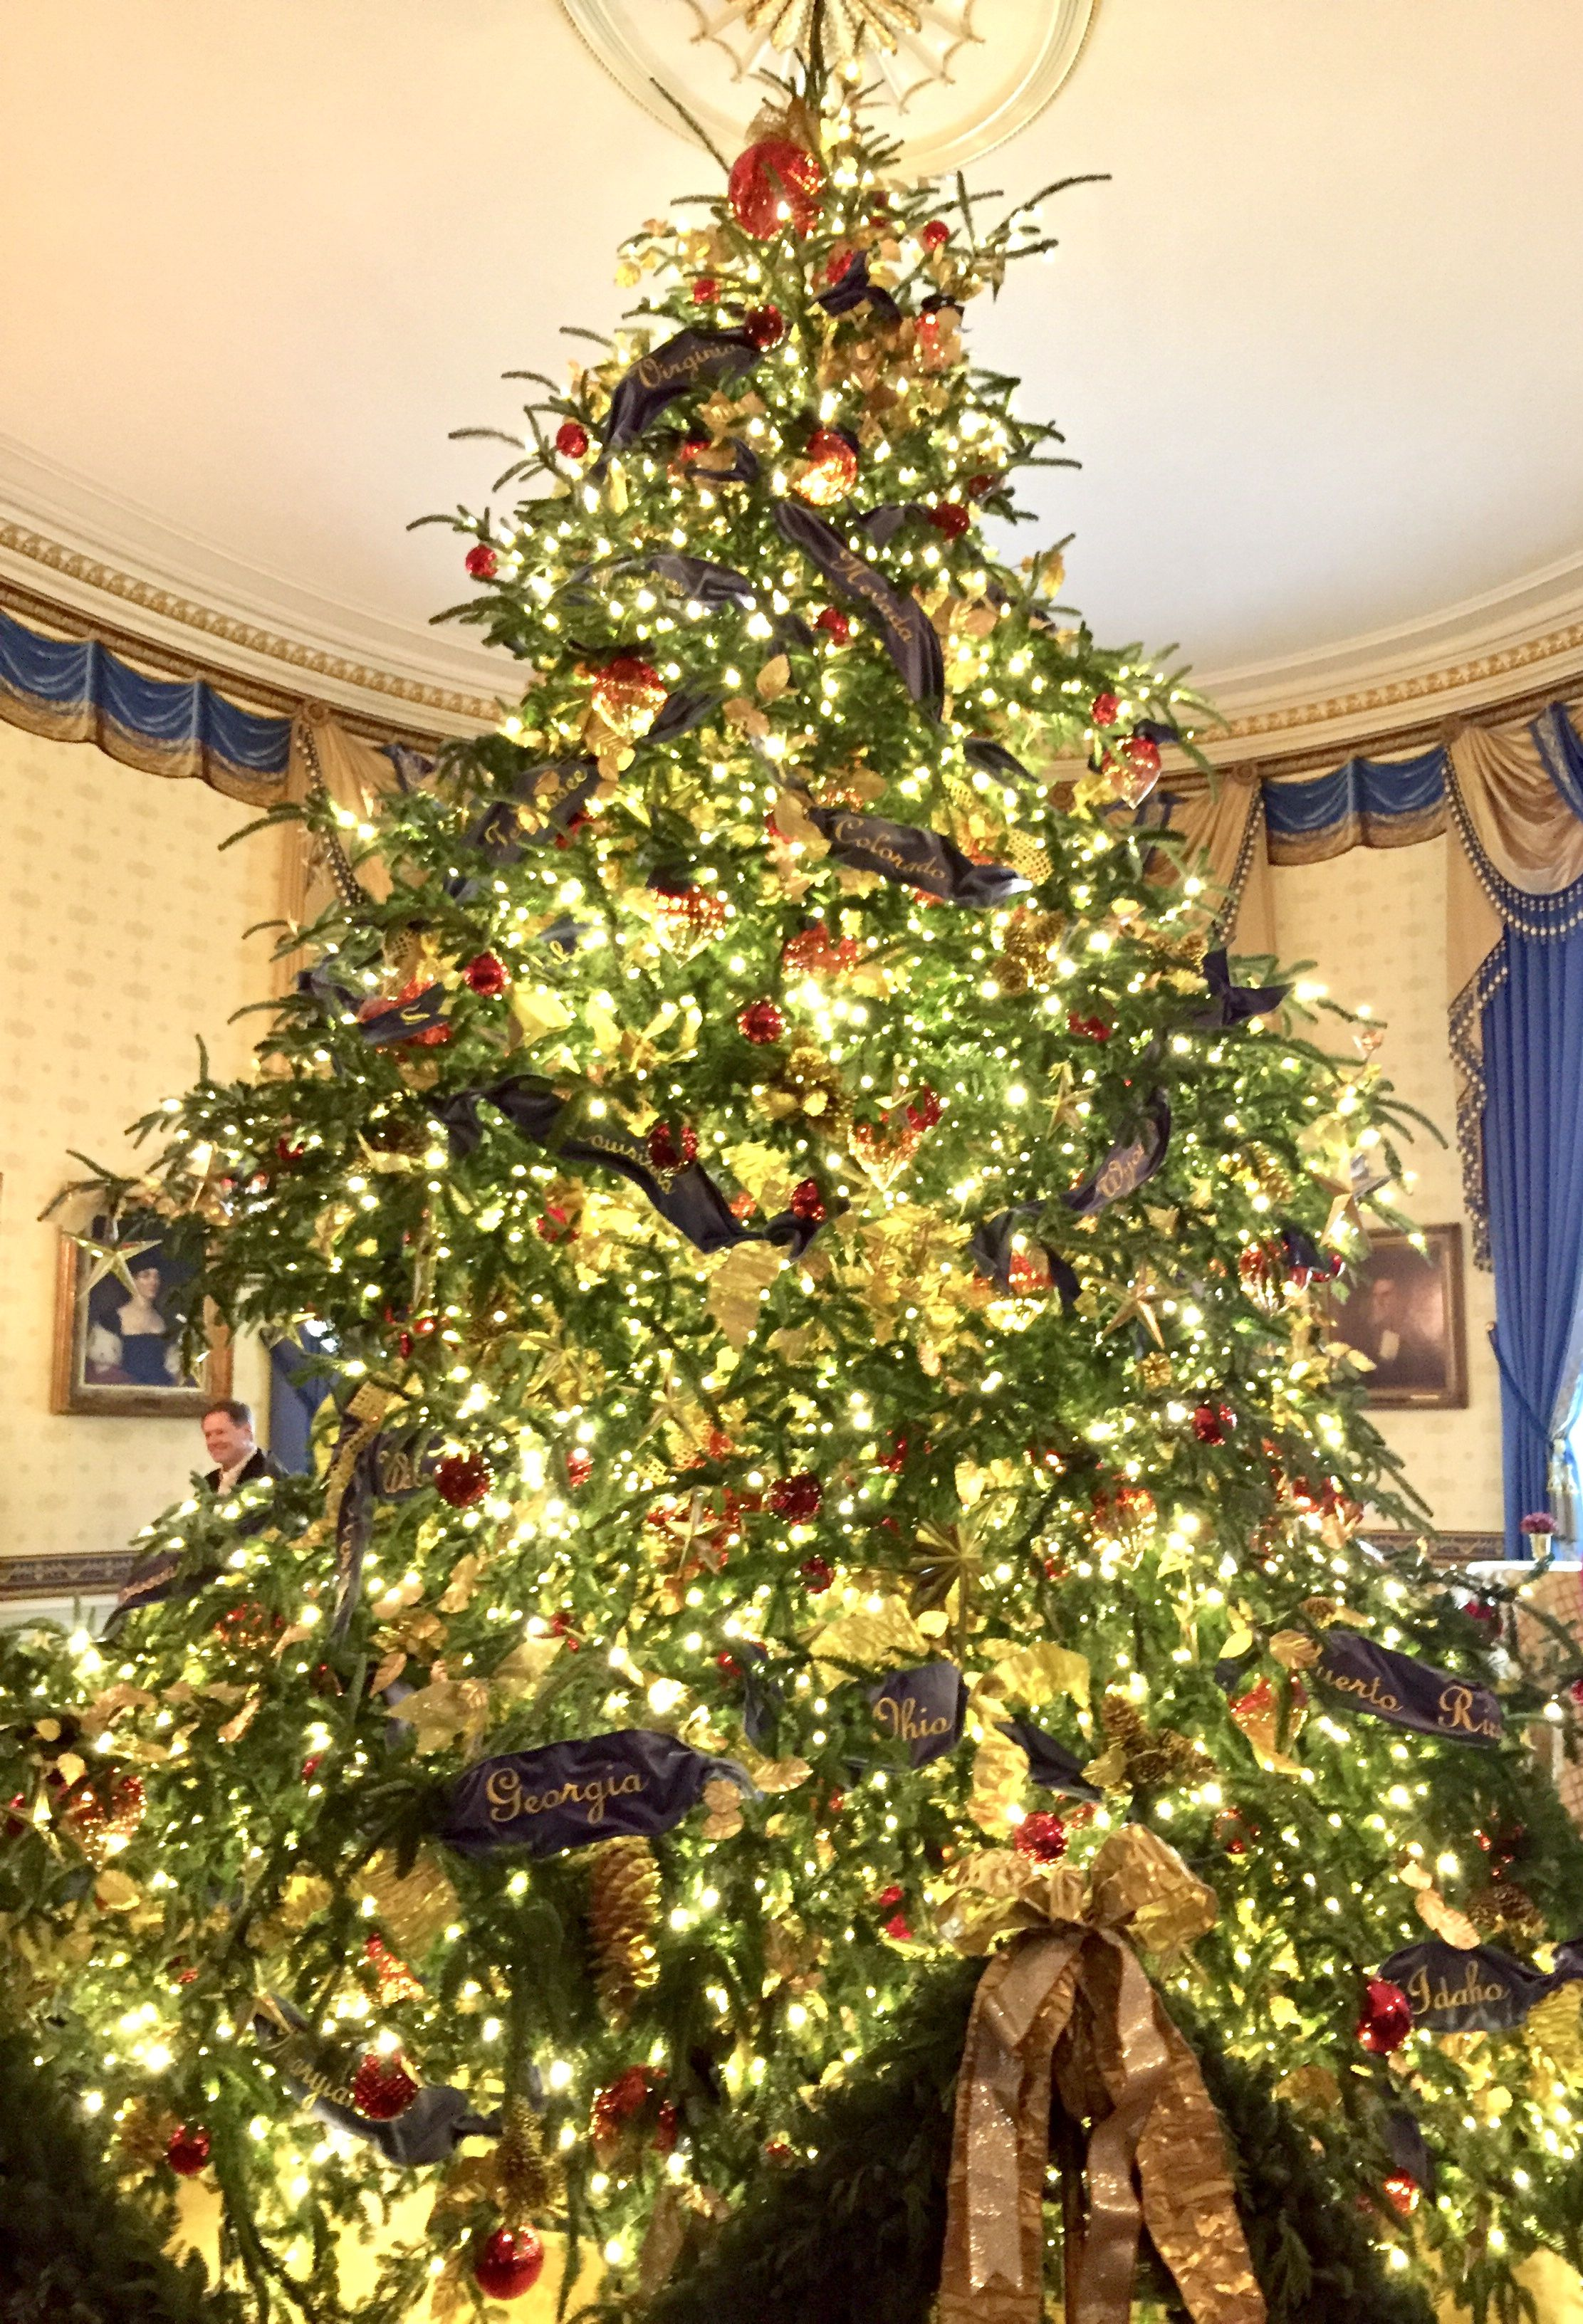 Christmas At The White House 2018 White House Christmas Decorations White House Christmas Blue Room Christmas Tree